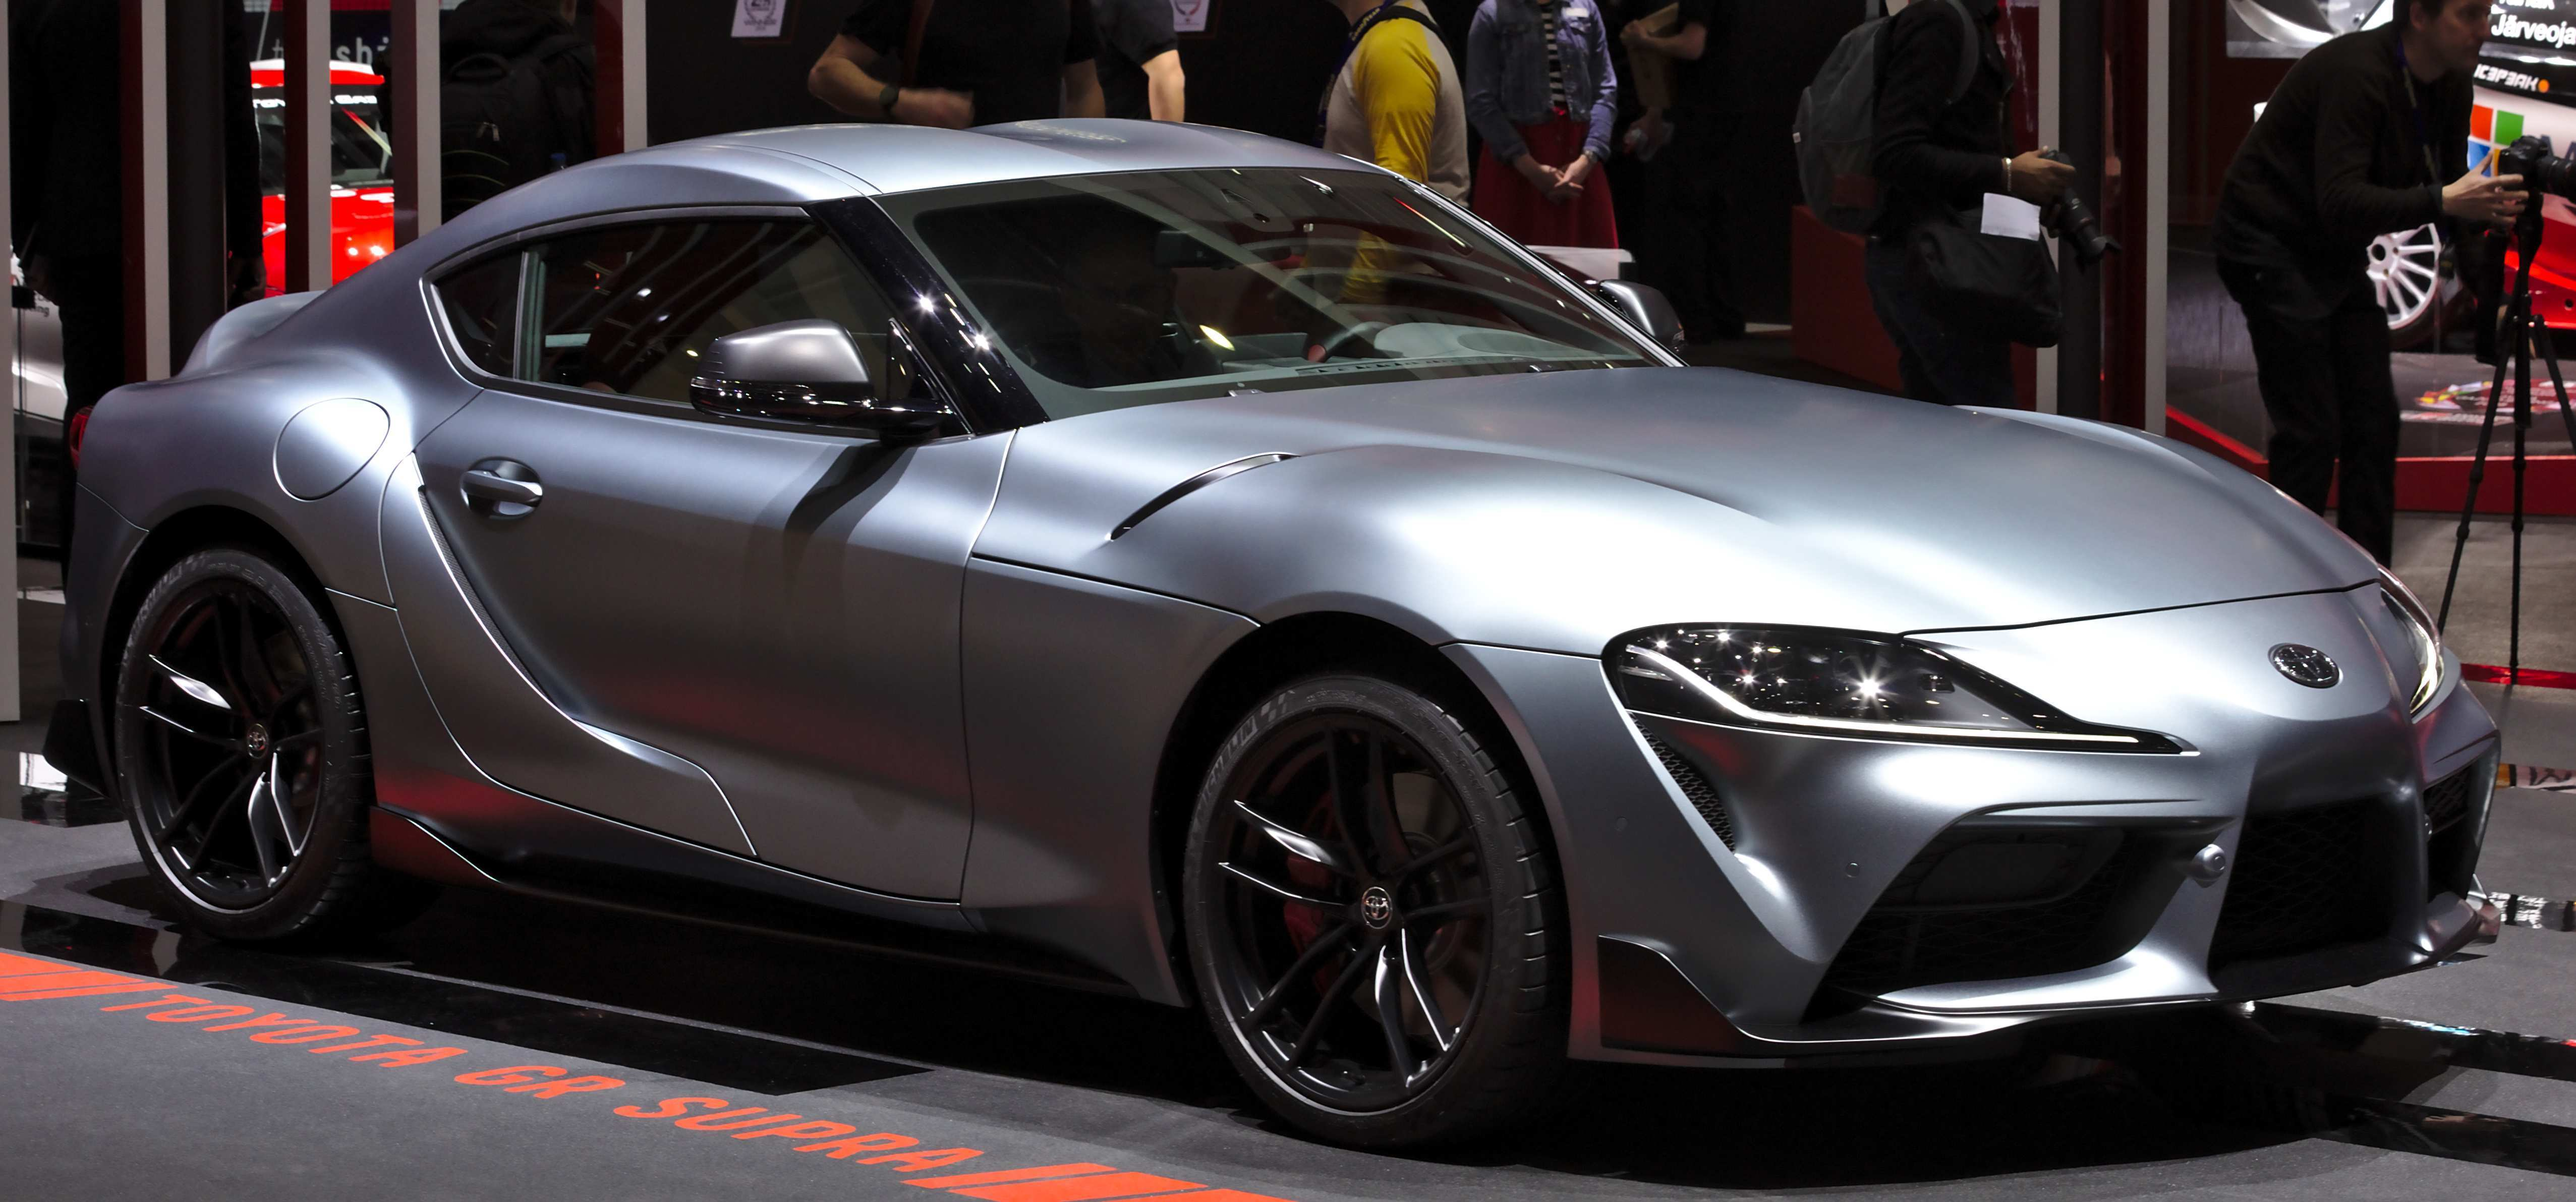 79 A Supra Toyota 2019 Price Design And Review